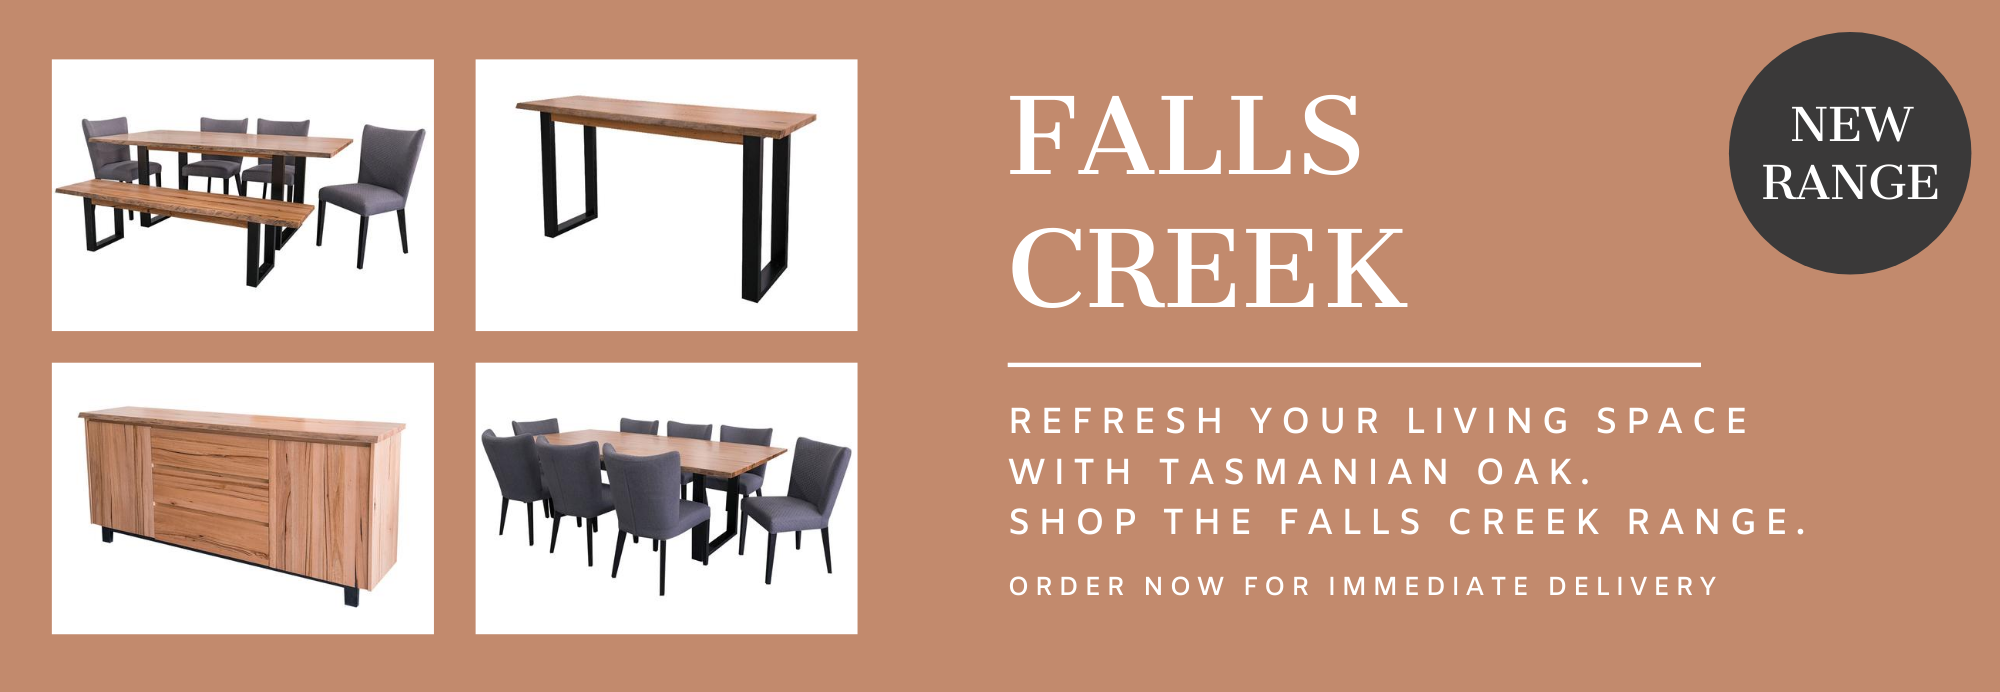 Shop Falls Creek Range